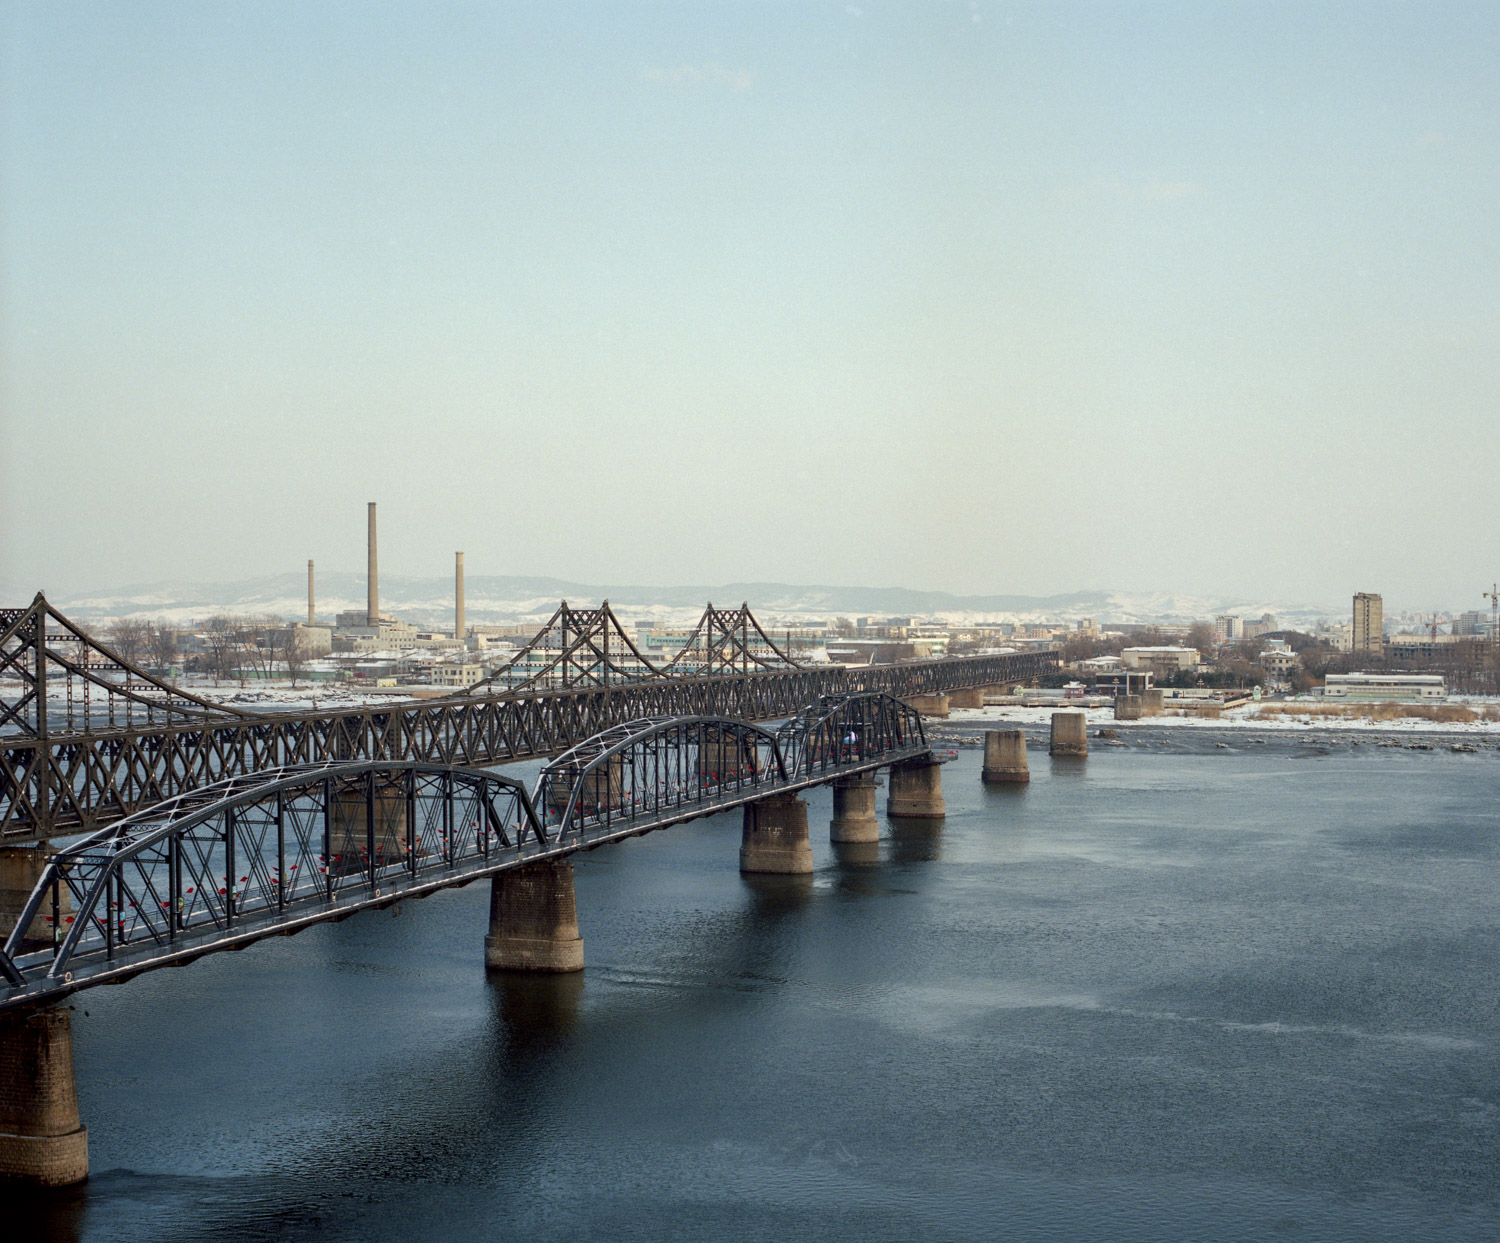 North Korea from the city of Dandong